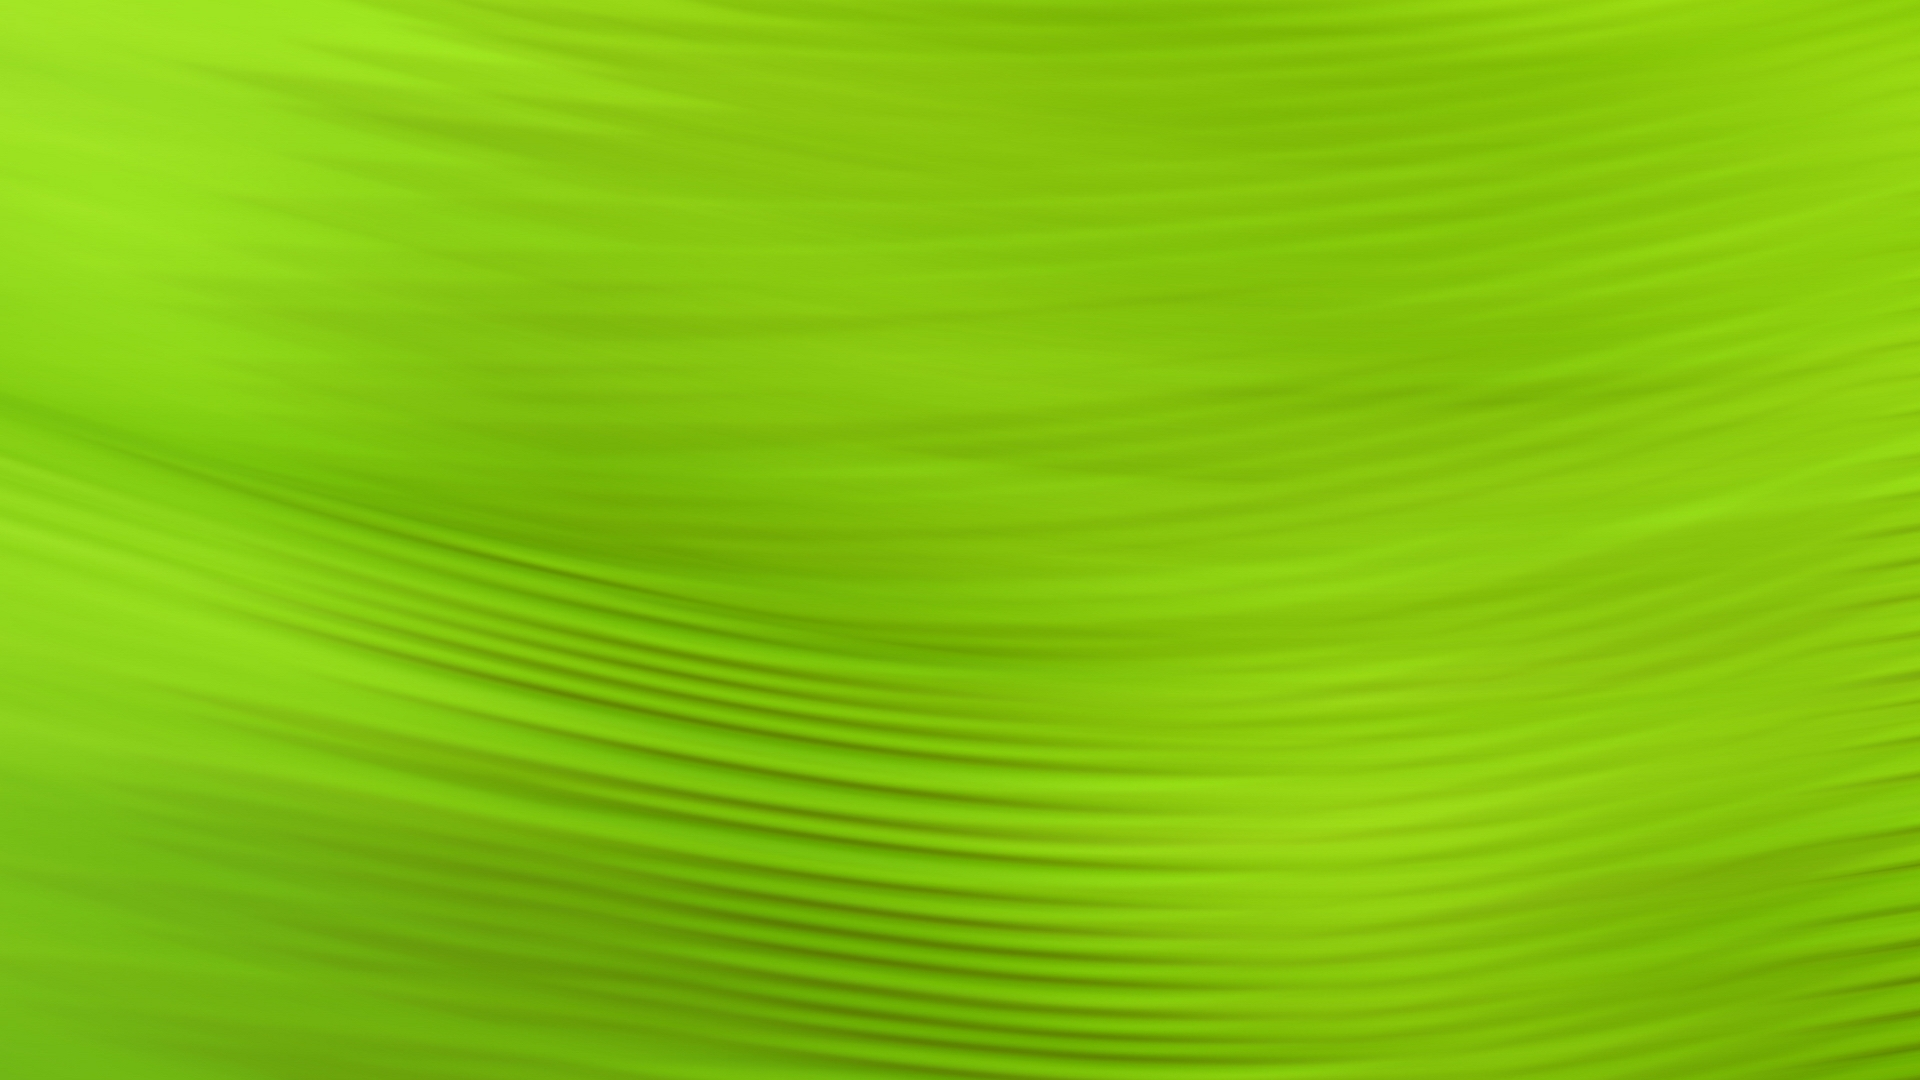 green  Green Texture backgrounds, Green Texture powerpoint free 1920x1080